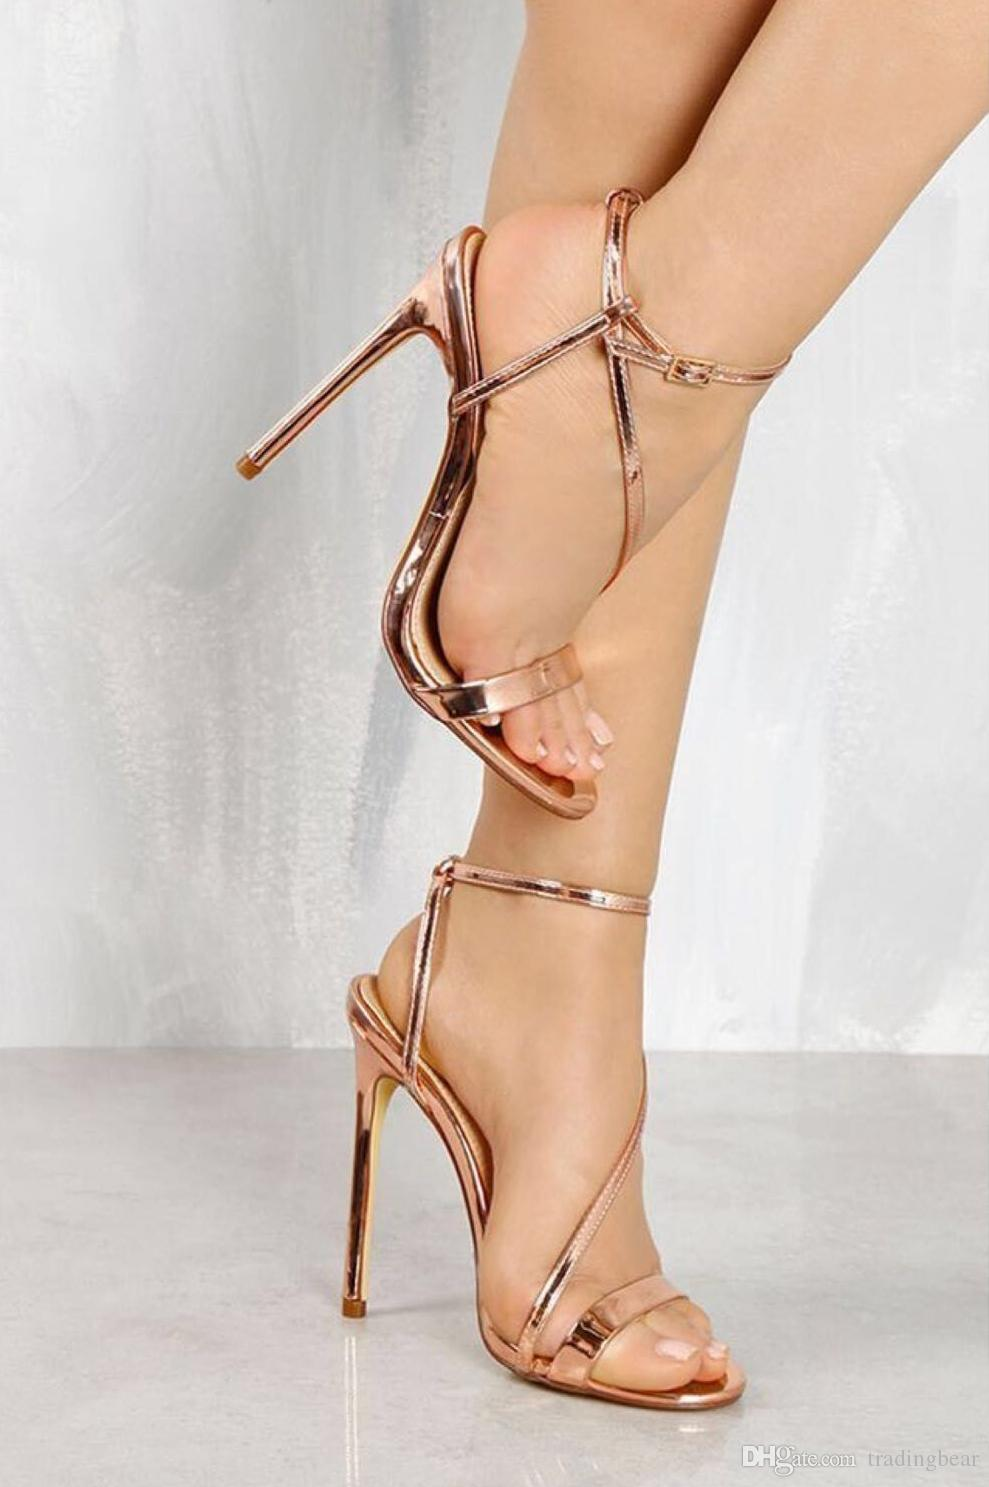 adc9a8cca77 Luxury Gold Ankle Strappy High Heels Fashion Shoes Designer Gladiator  Sandals For Women 2018 Size 35 To 40 Heels Gladiator Sandals From  Tradingbear